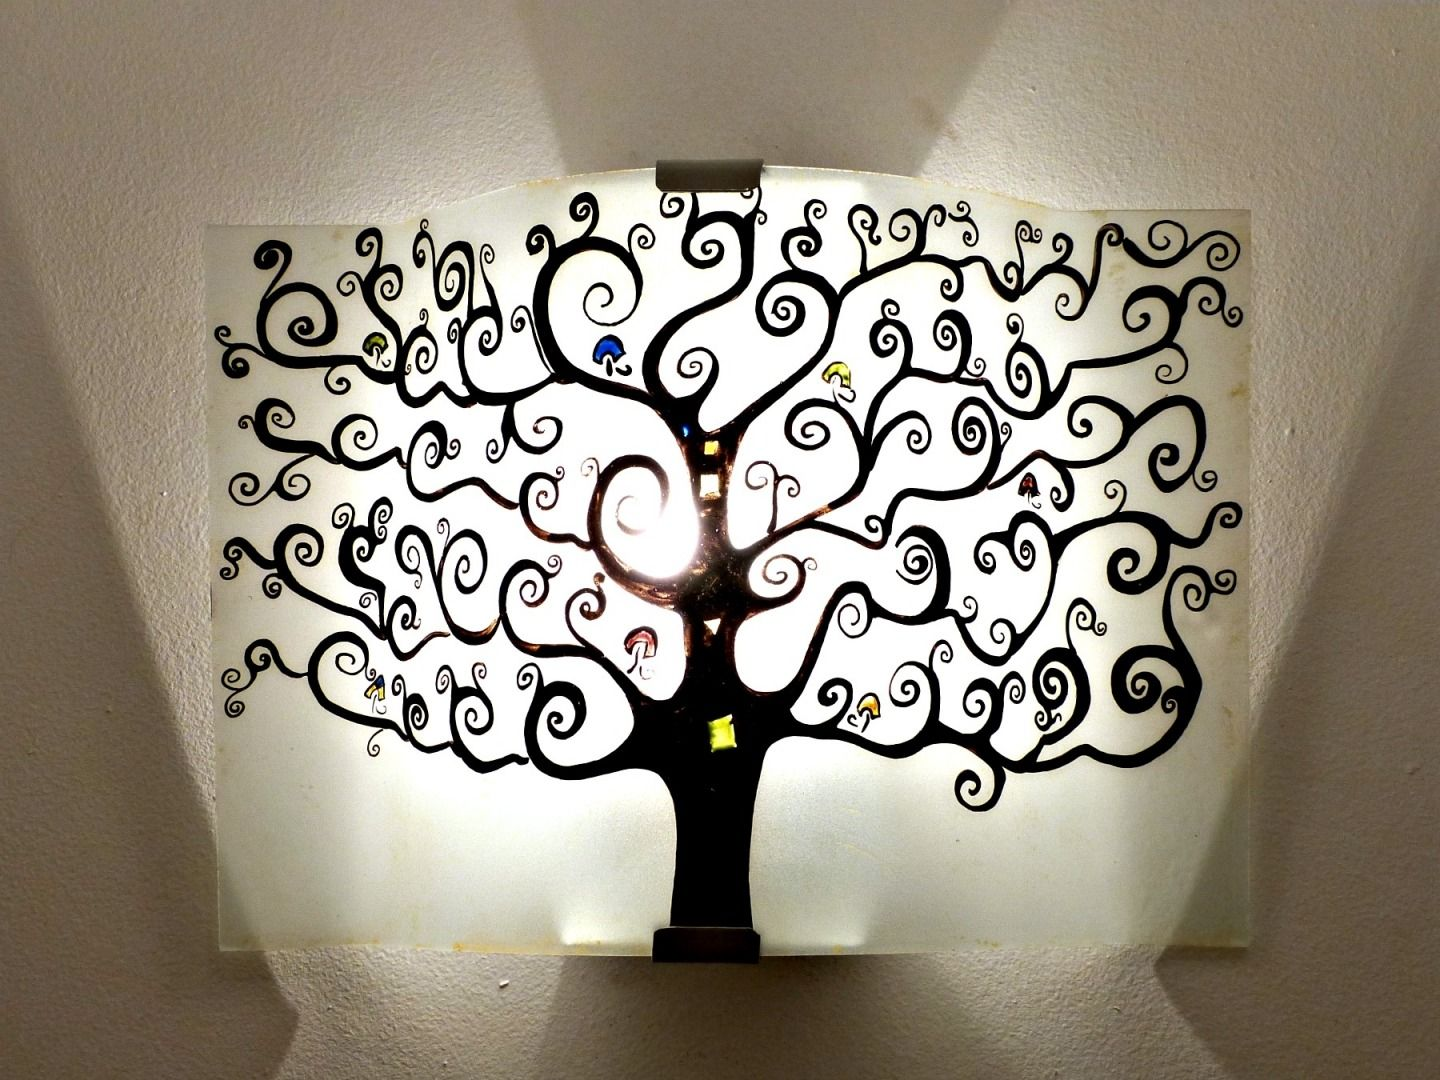 luminaire applique murale noire et blanc arbre de vie. Black Bedroom Furniture Sets. Home Design Ideas